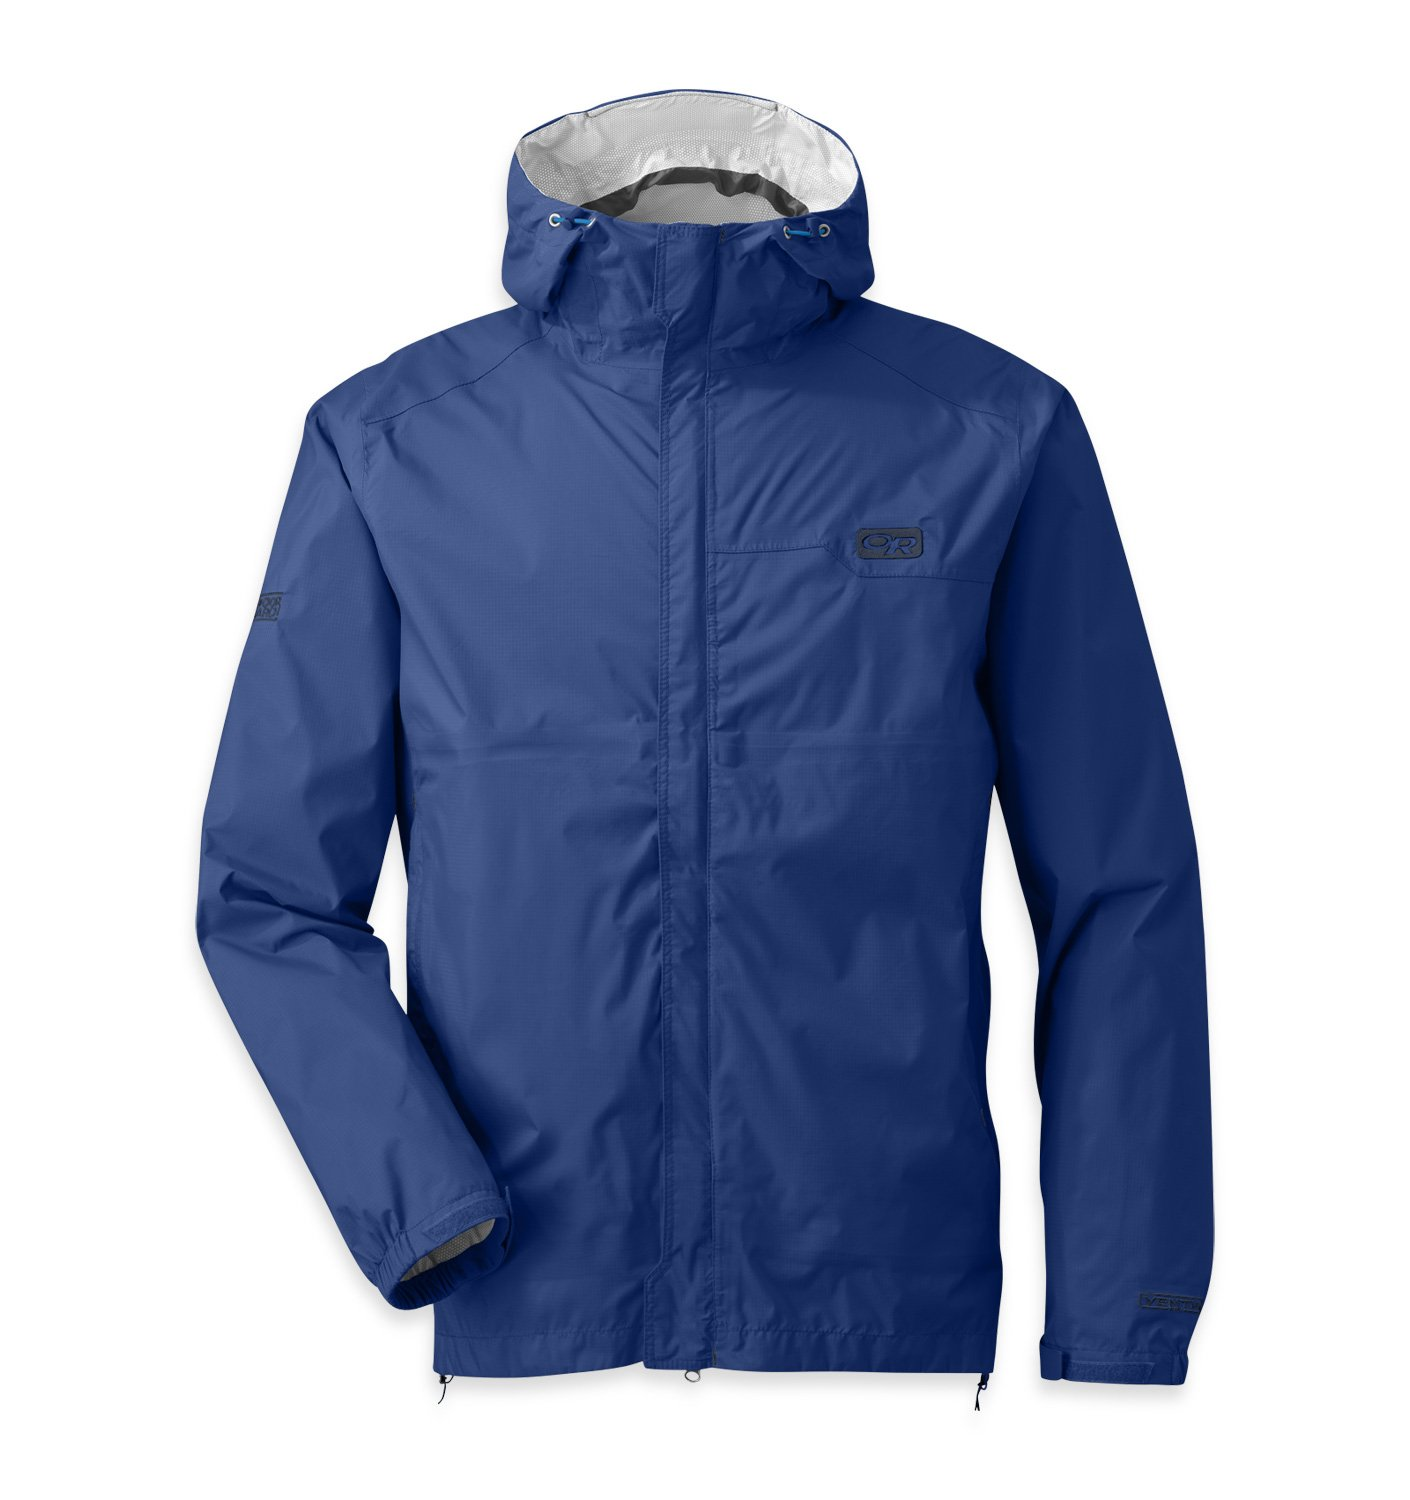 Outdoor Research Men's Horizon Jacket, Baltic, X-Large